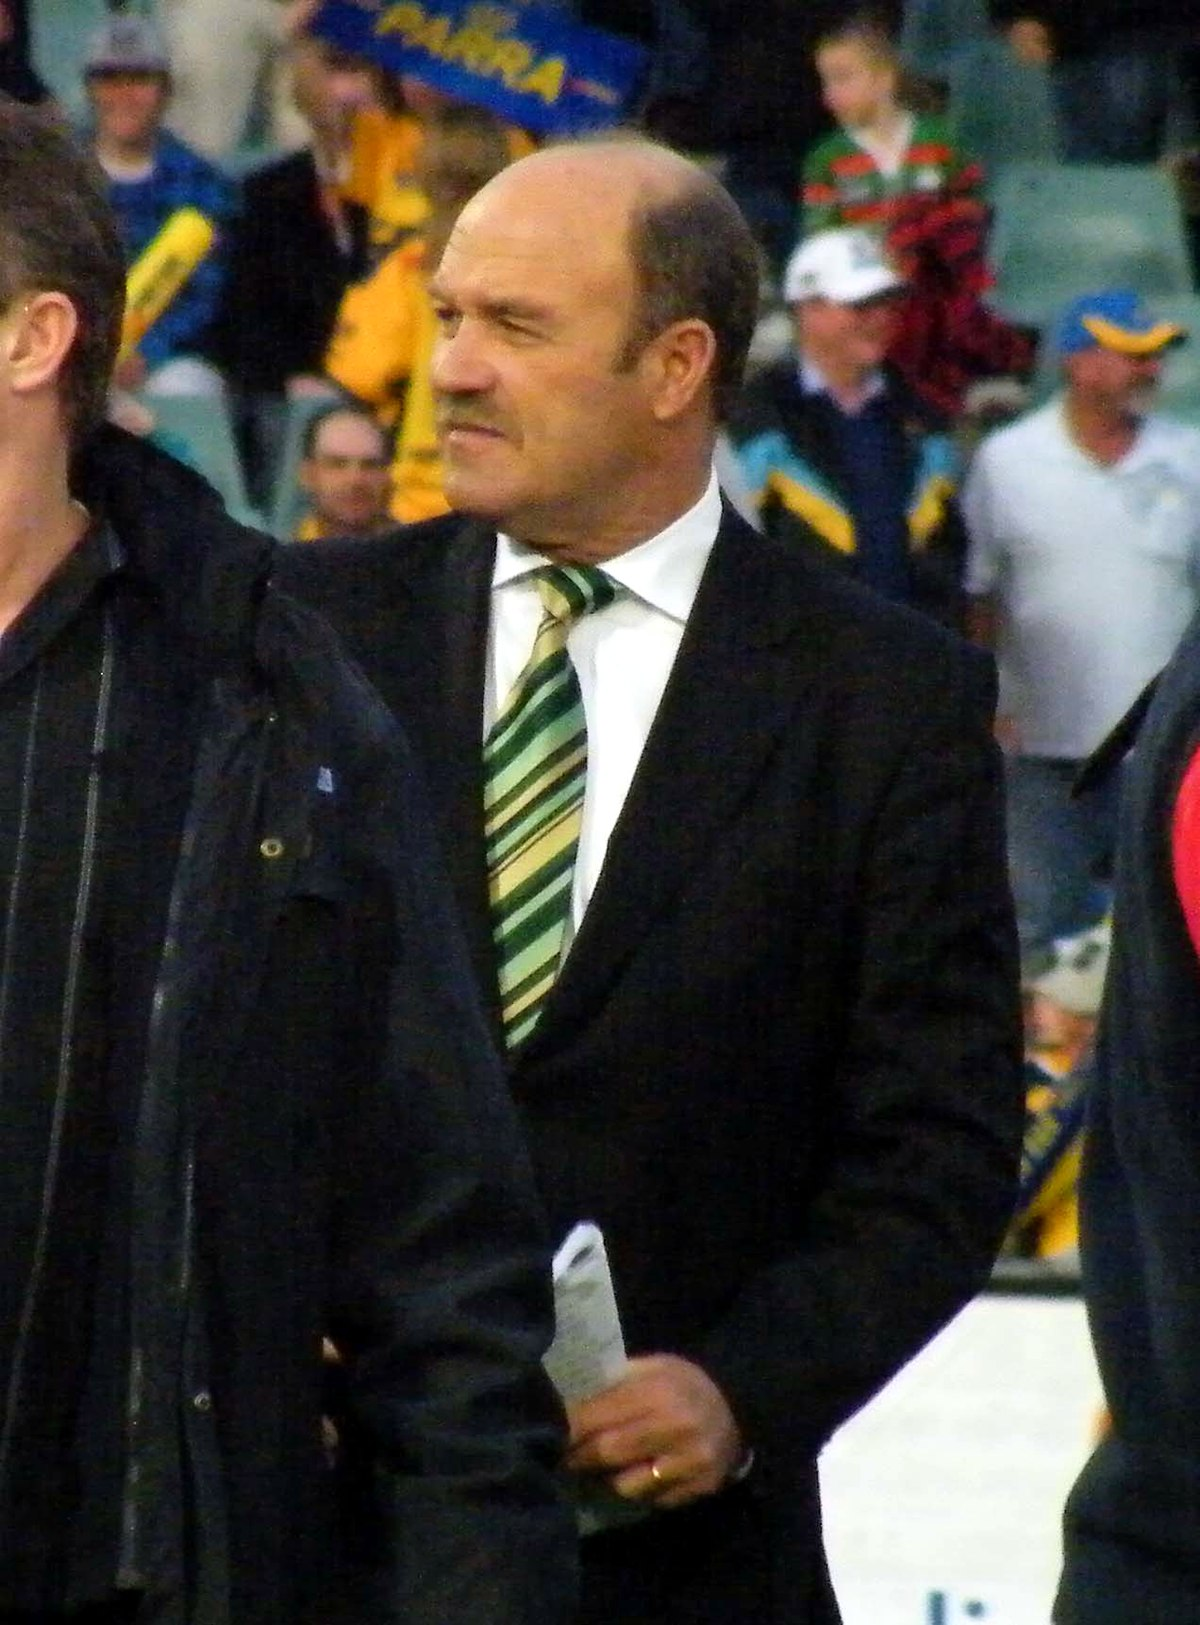 wally lewis wikipedia